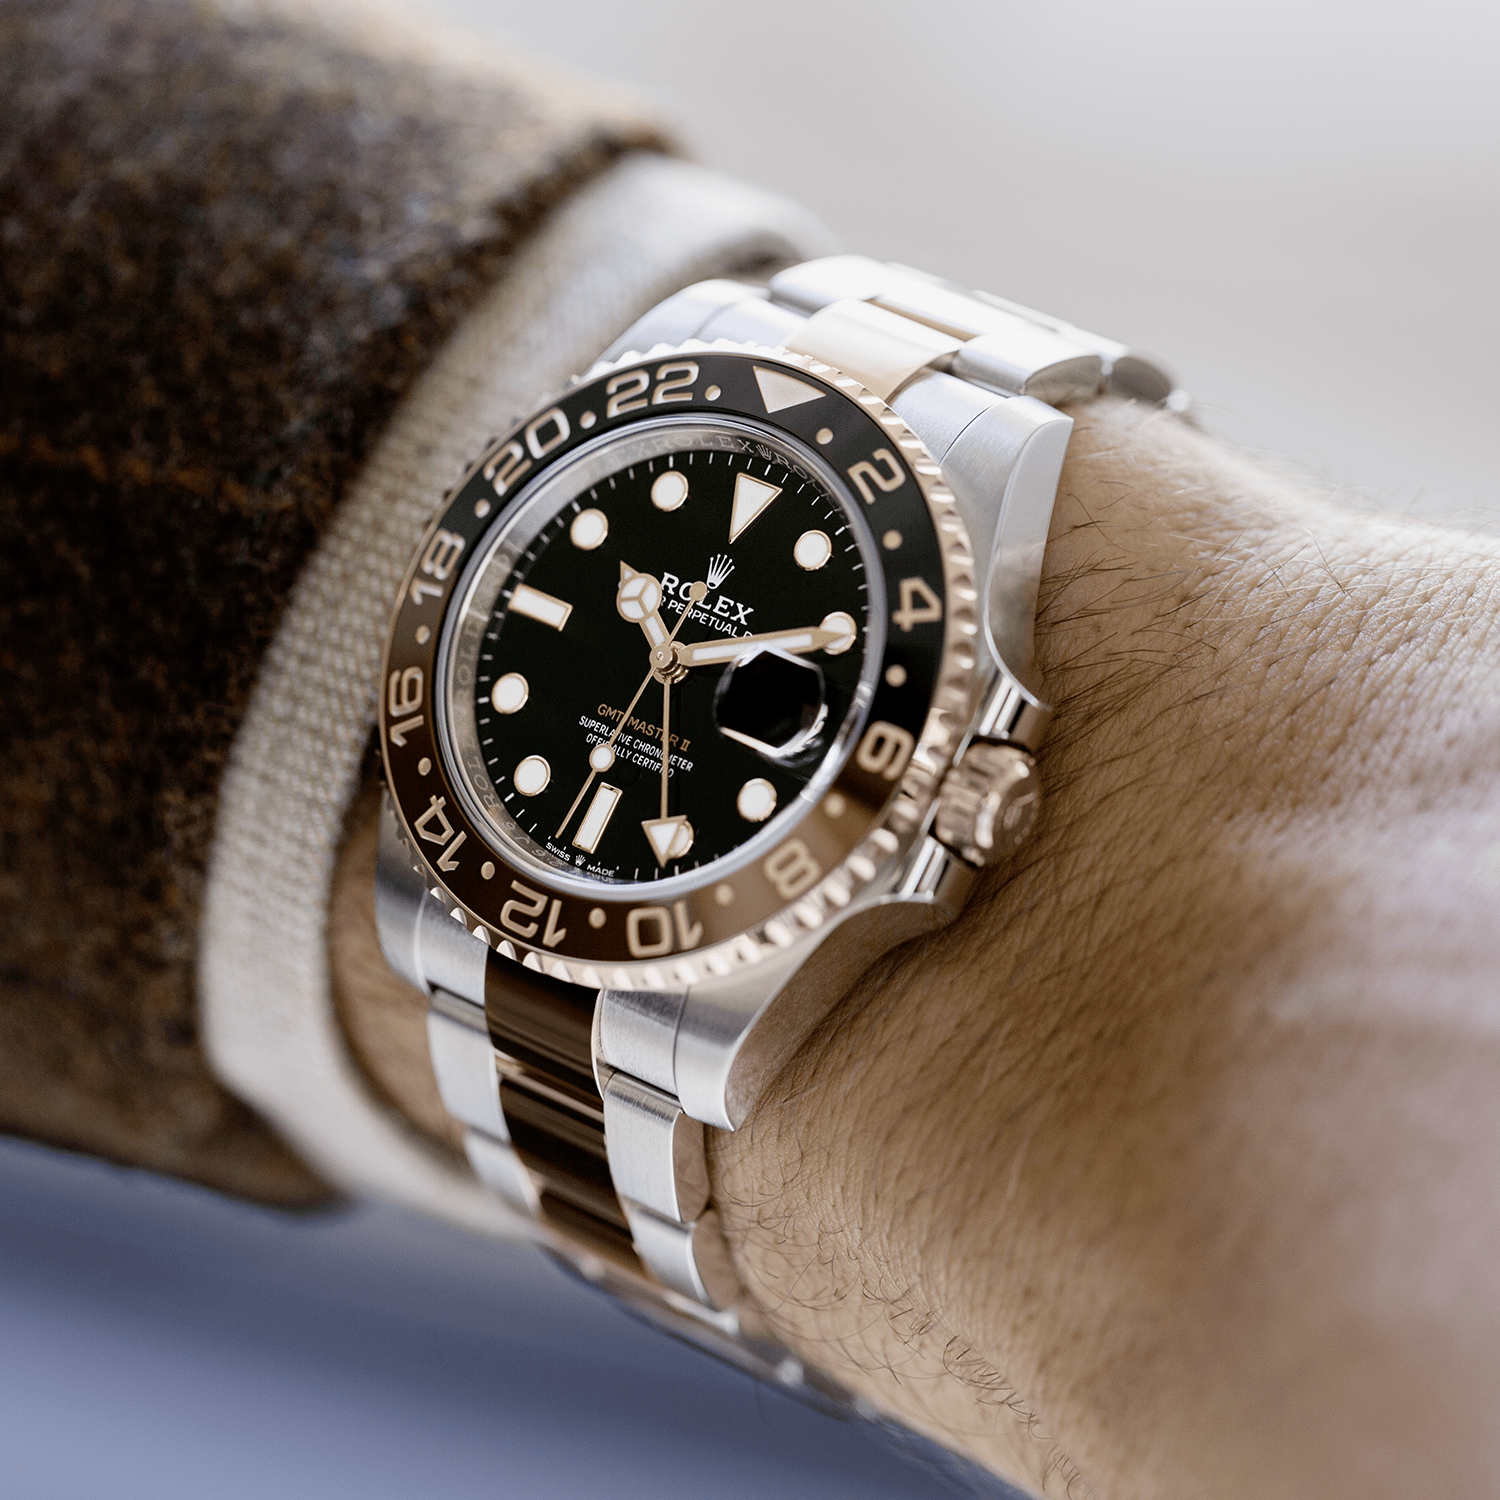 Rolex Oyster Perpetual GMT-Master II In Everose Rolesor - Kee Hing Hung